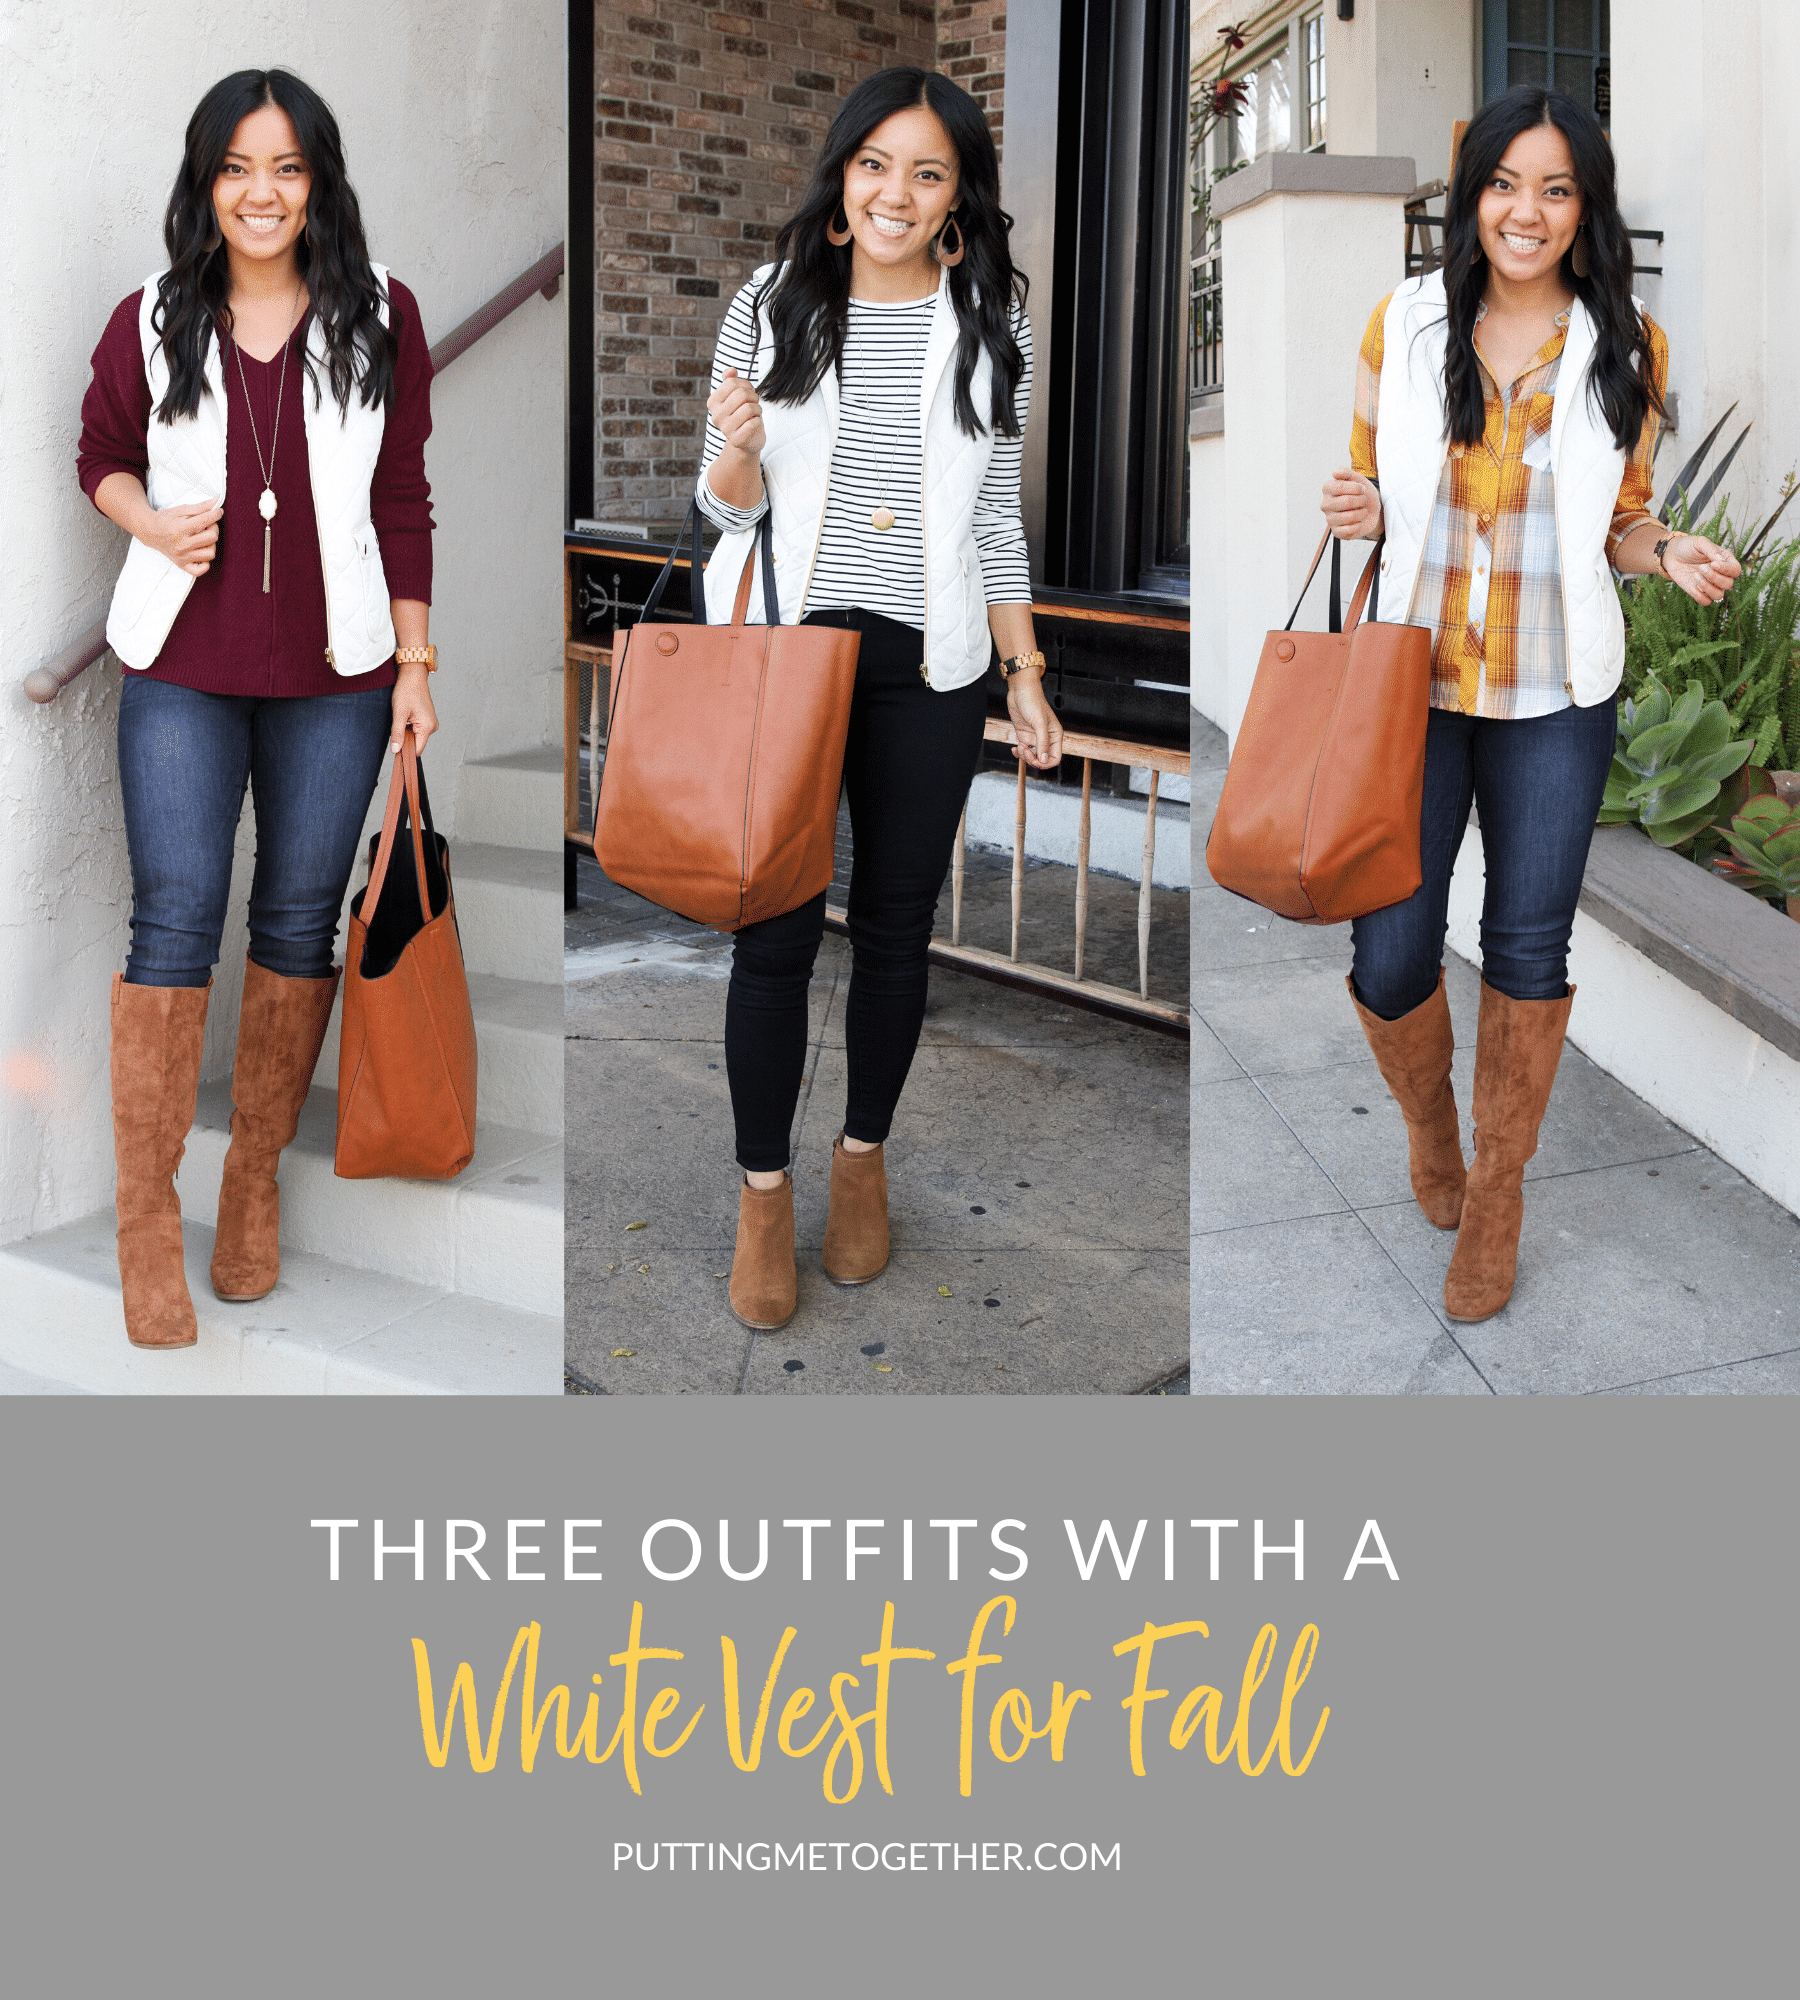 3 Outfits with a White Vest for Fall